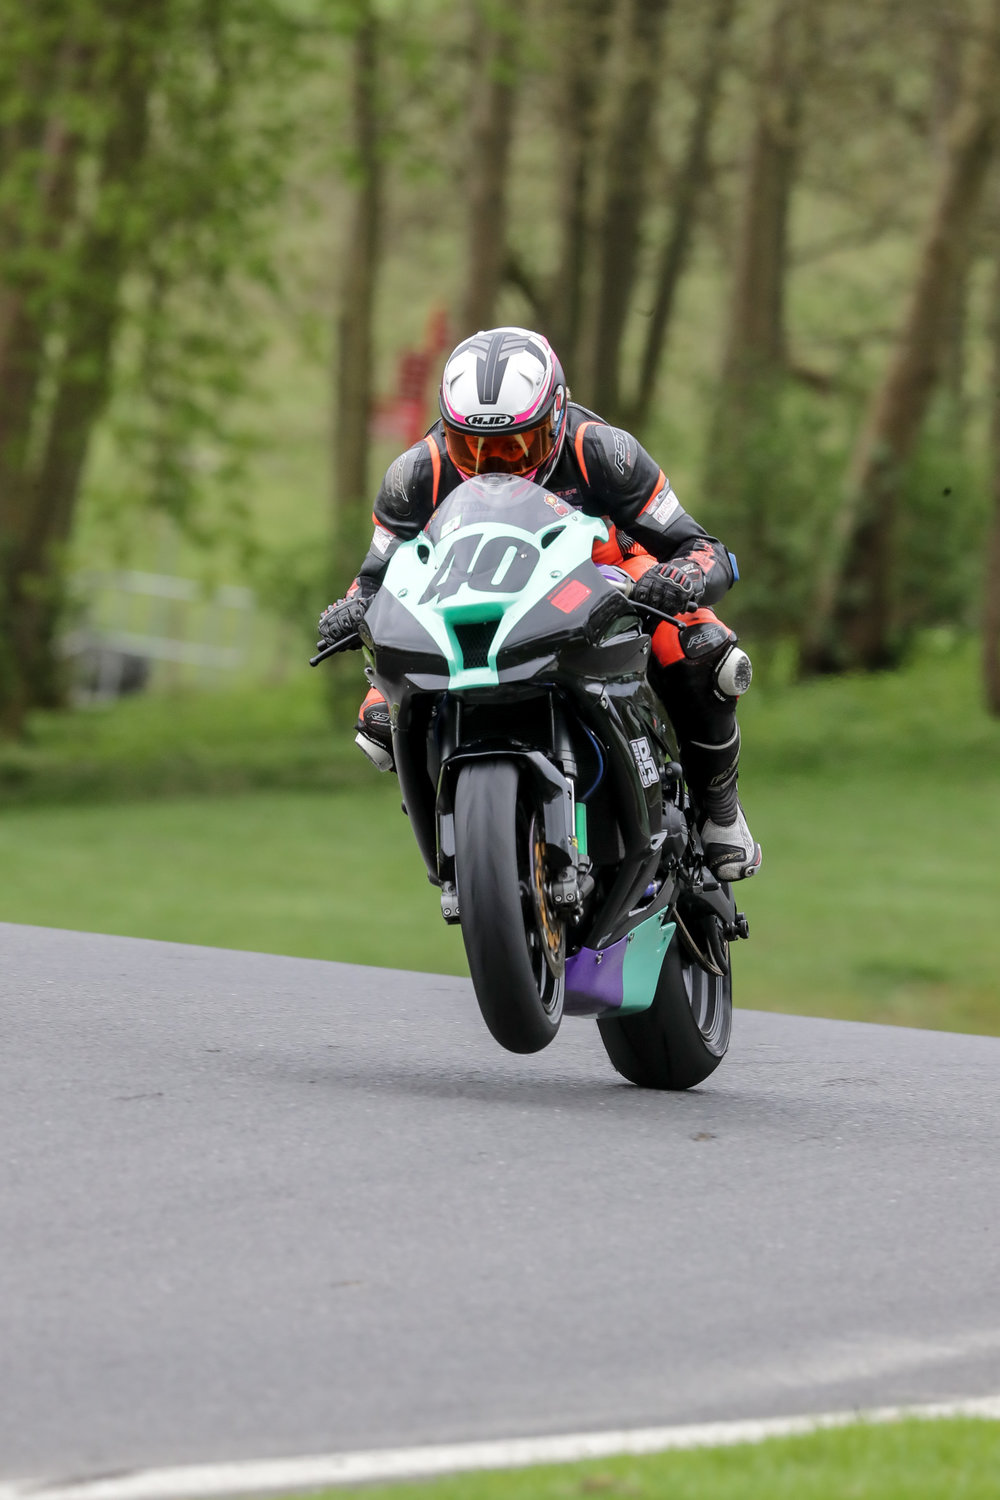 downloadz_120417_9730_cadwell_park.jpg